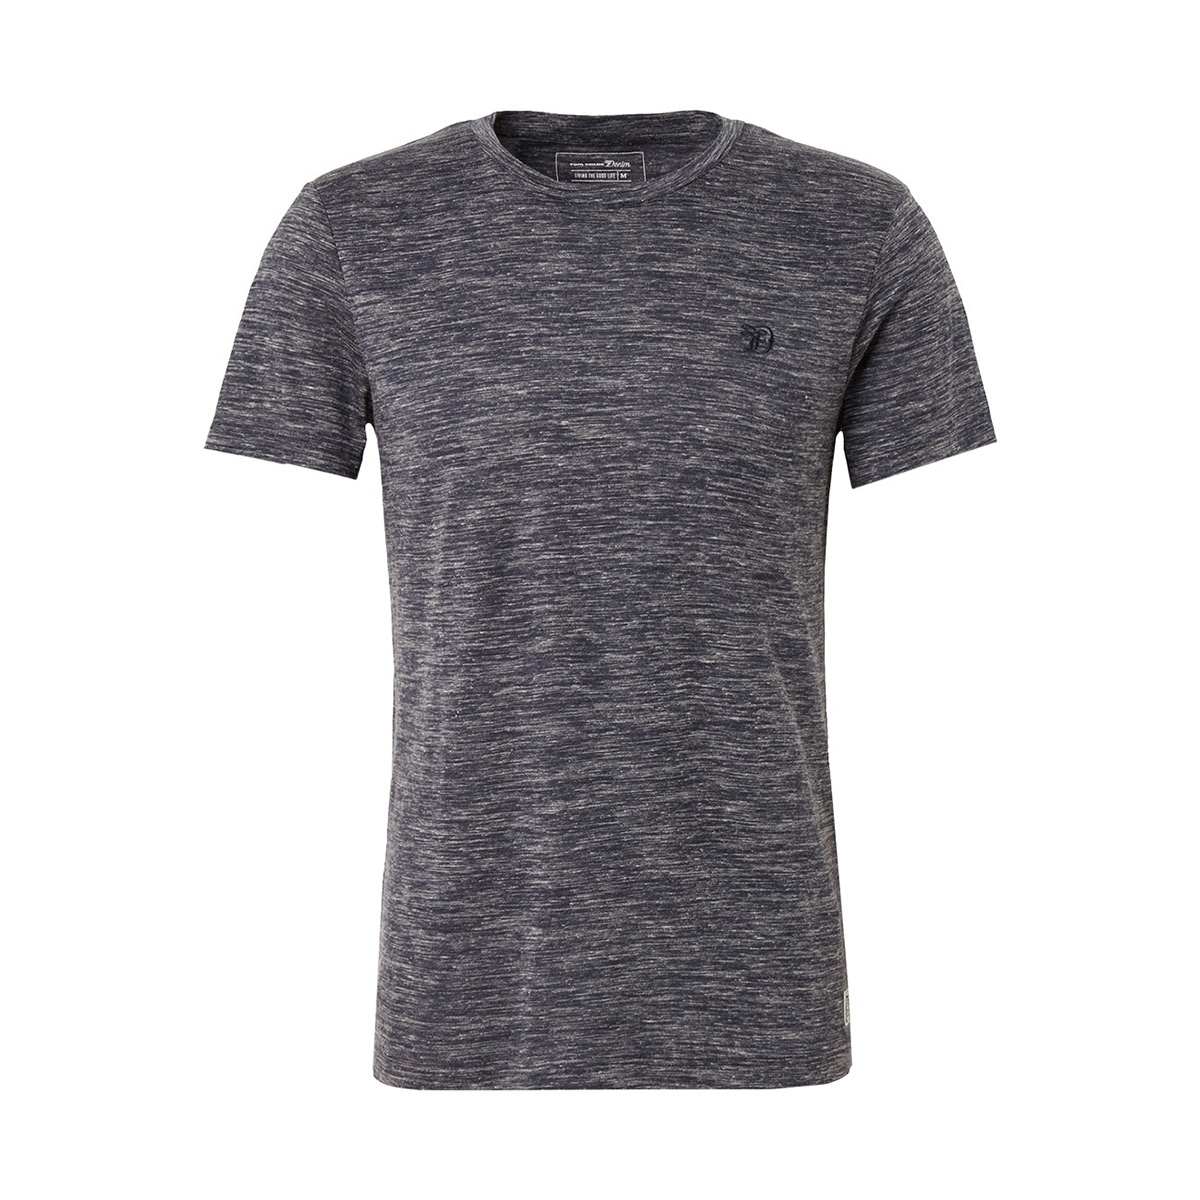 1009207xx12 tom tailor t-shirt 14591